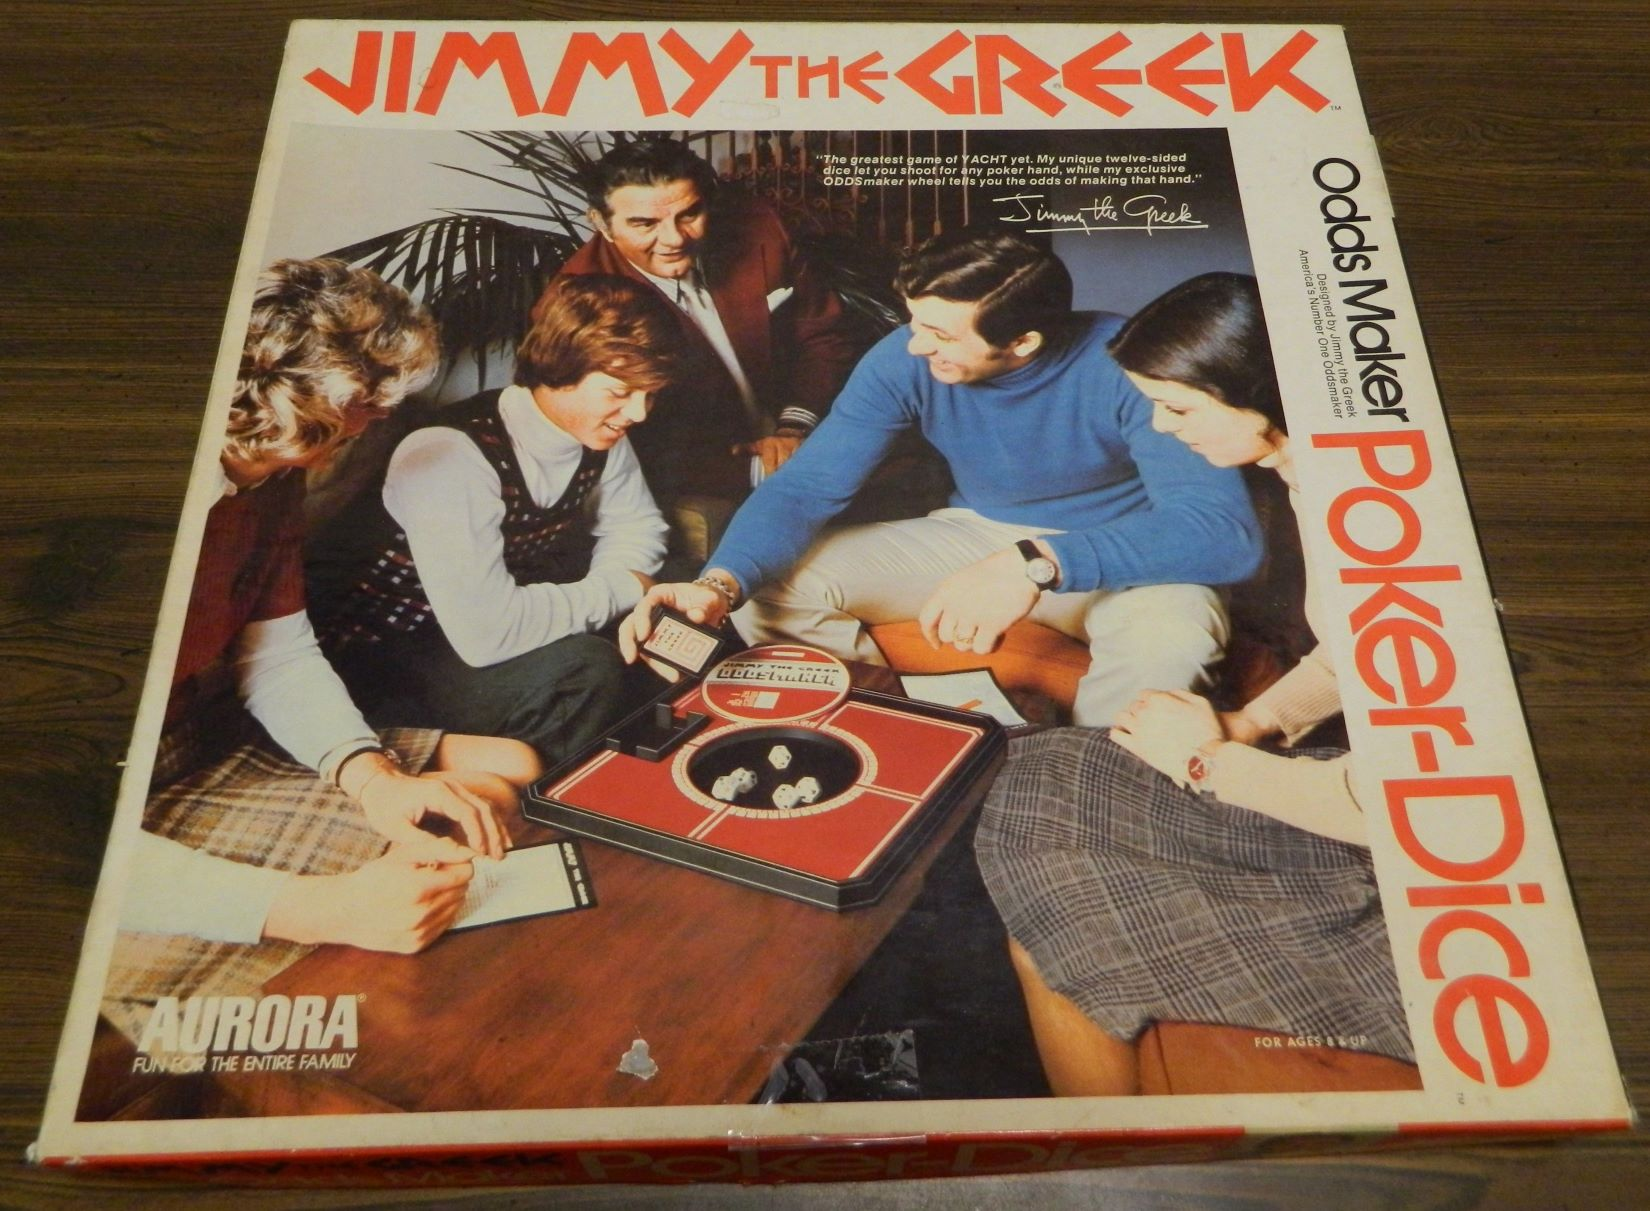 Box for Jimmy the Greek Oddsmaker Poker-Dice